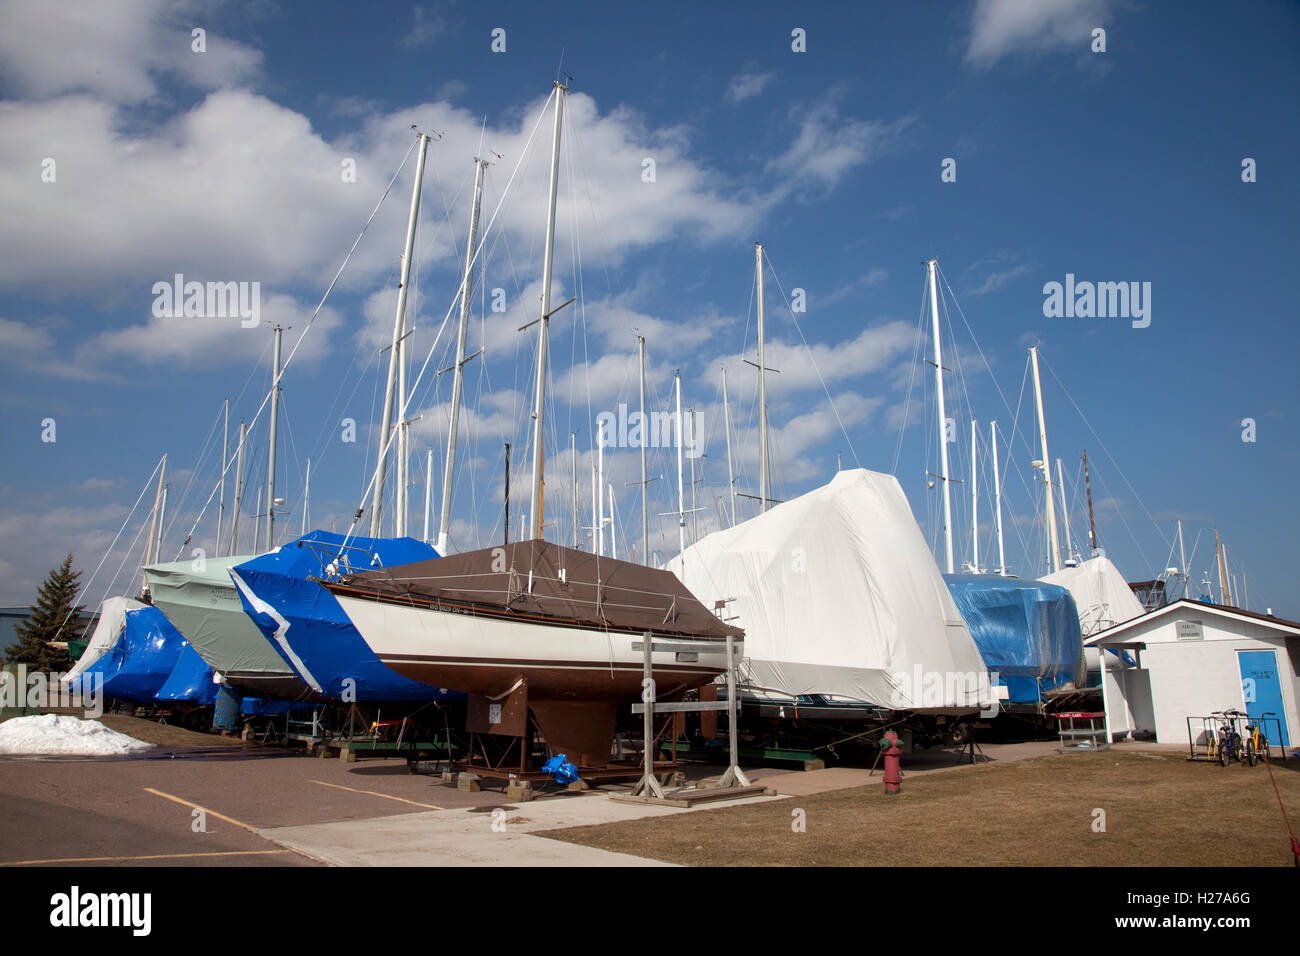 Cluster of sailboats and yachts wrapped for winter storage on land at The Washburn Marina. Washburn Wisconsin WI - Stock Image